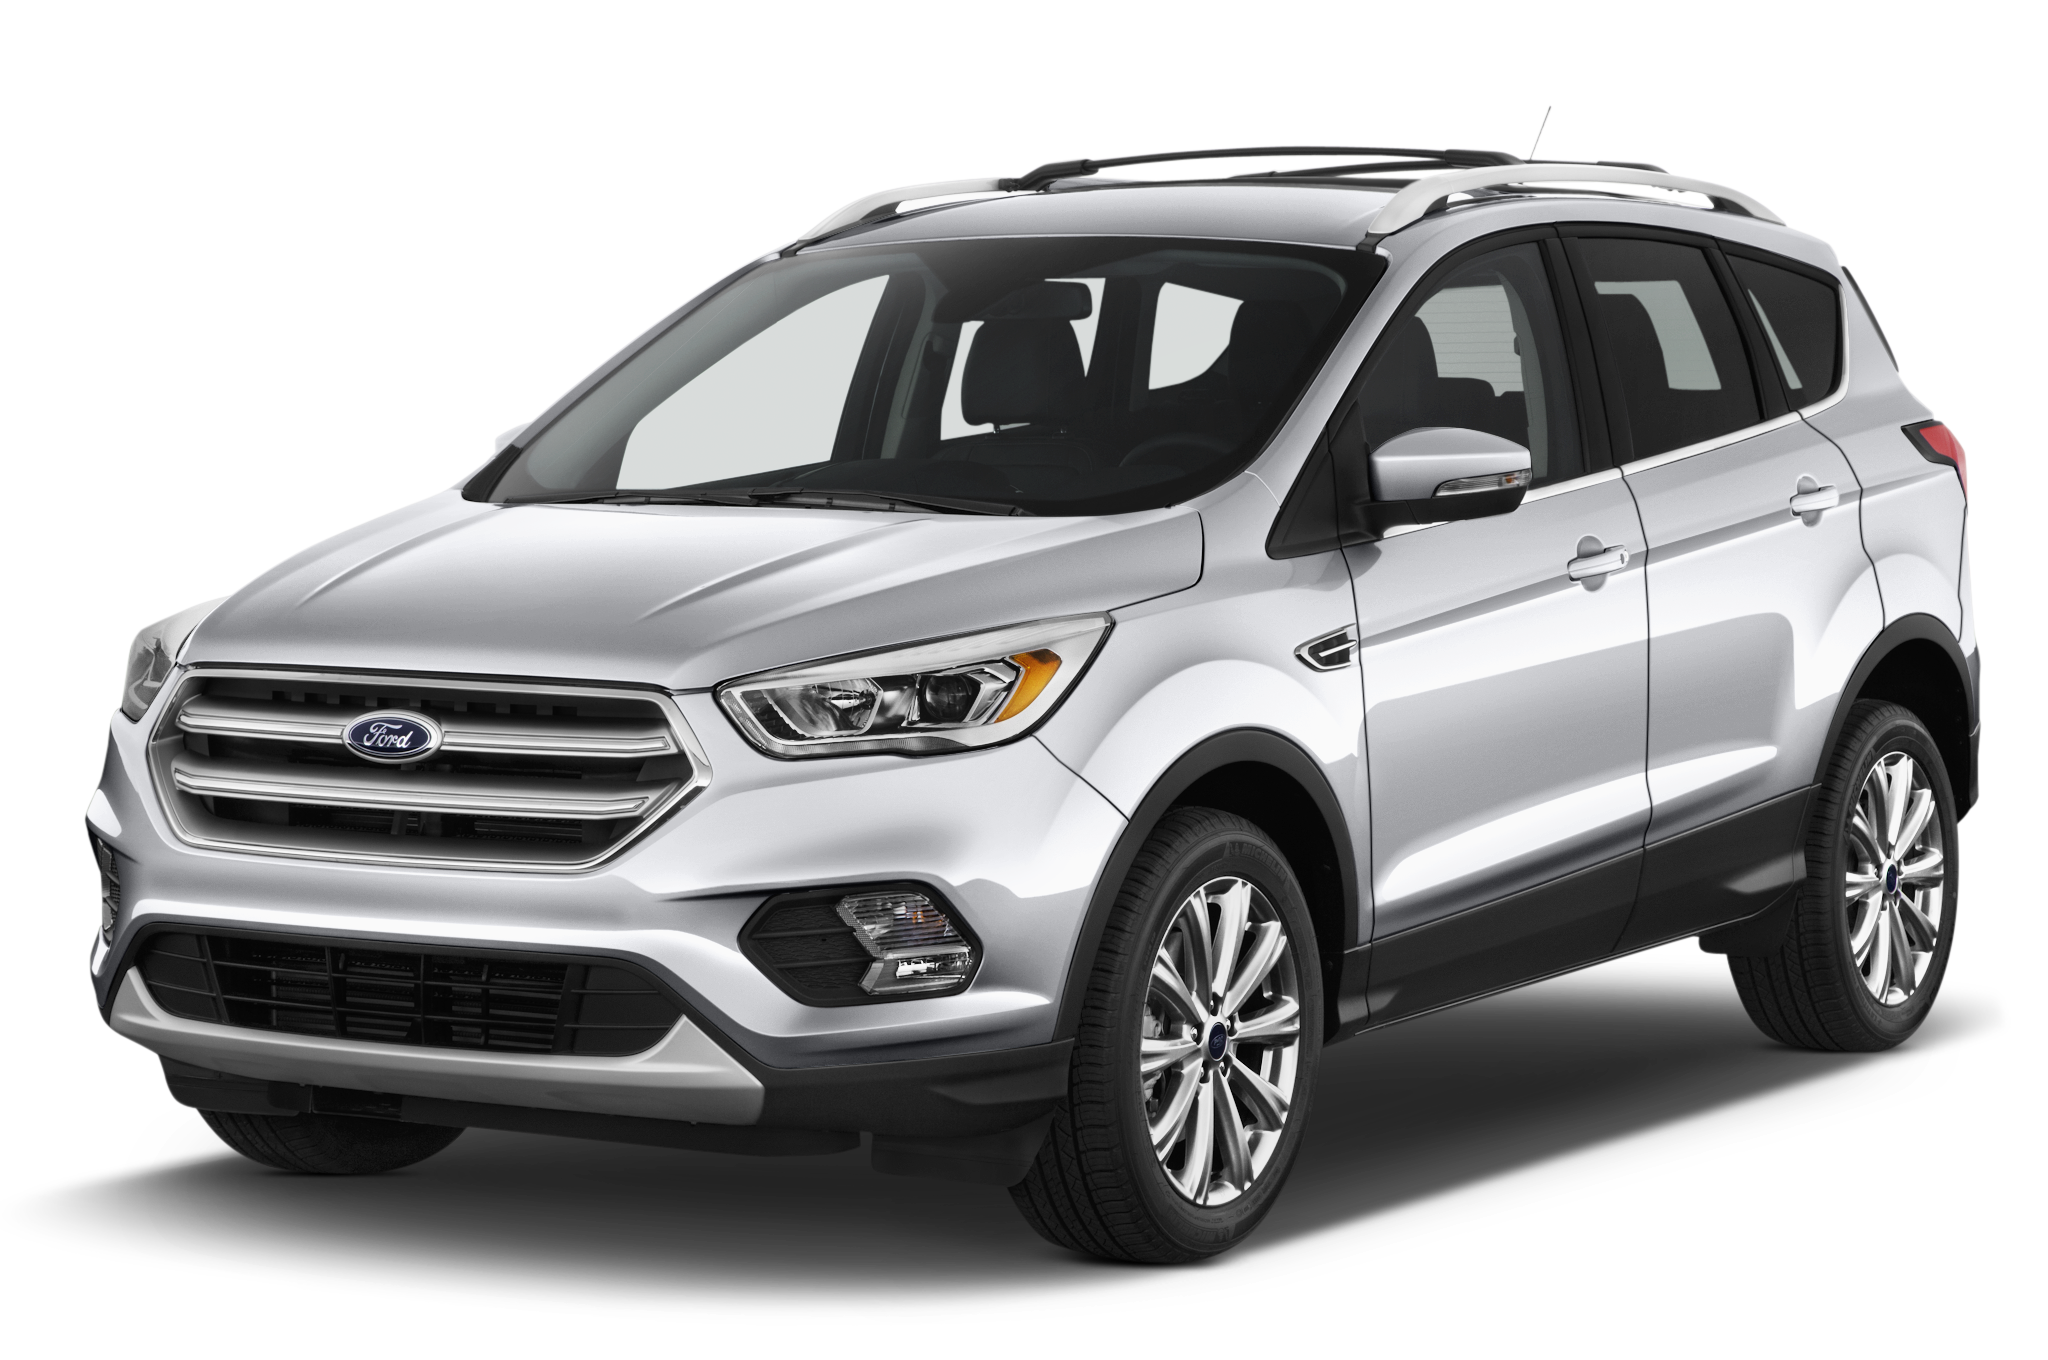 dealerships east technology suvs arrives power segment smart ford ever other middle in size more all redefining full than expedition suv capability with and new